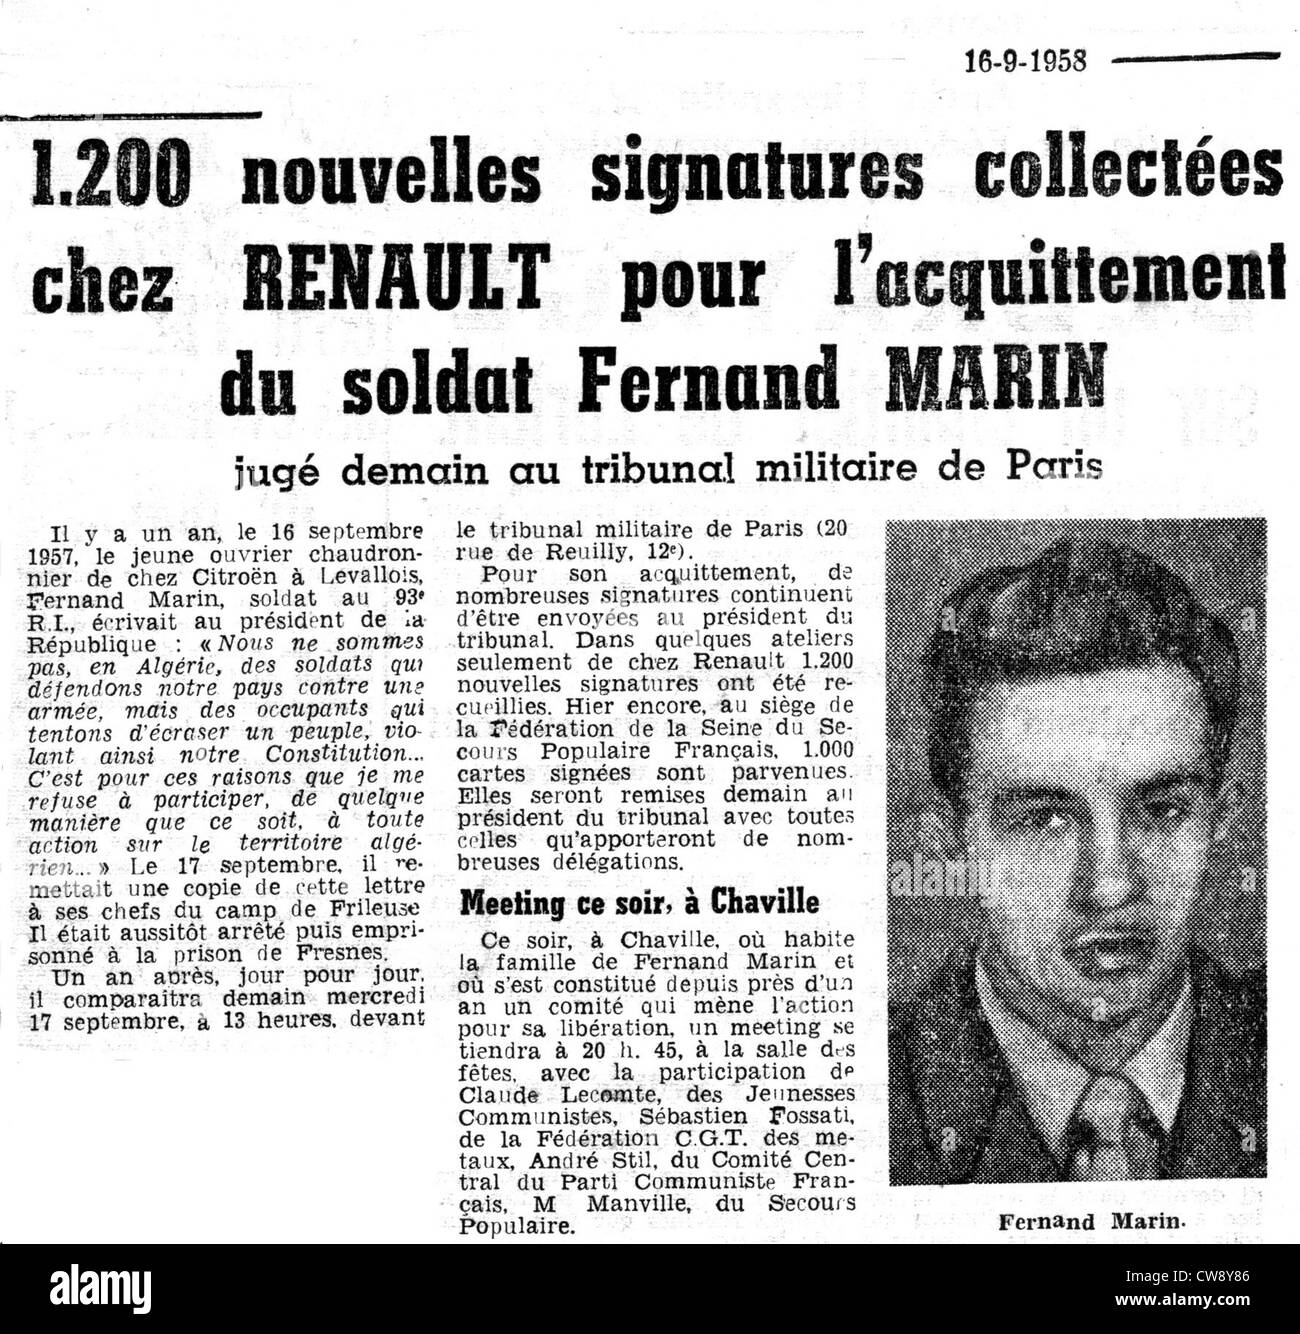 Article in newspaper 'L'Humanité' concerning Fernand Marin draft resister - Stock Image